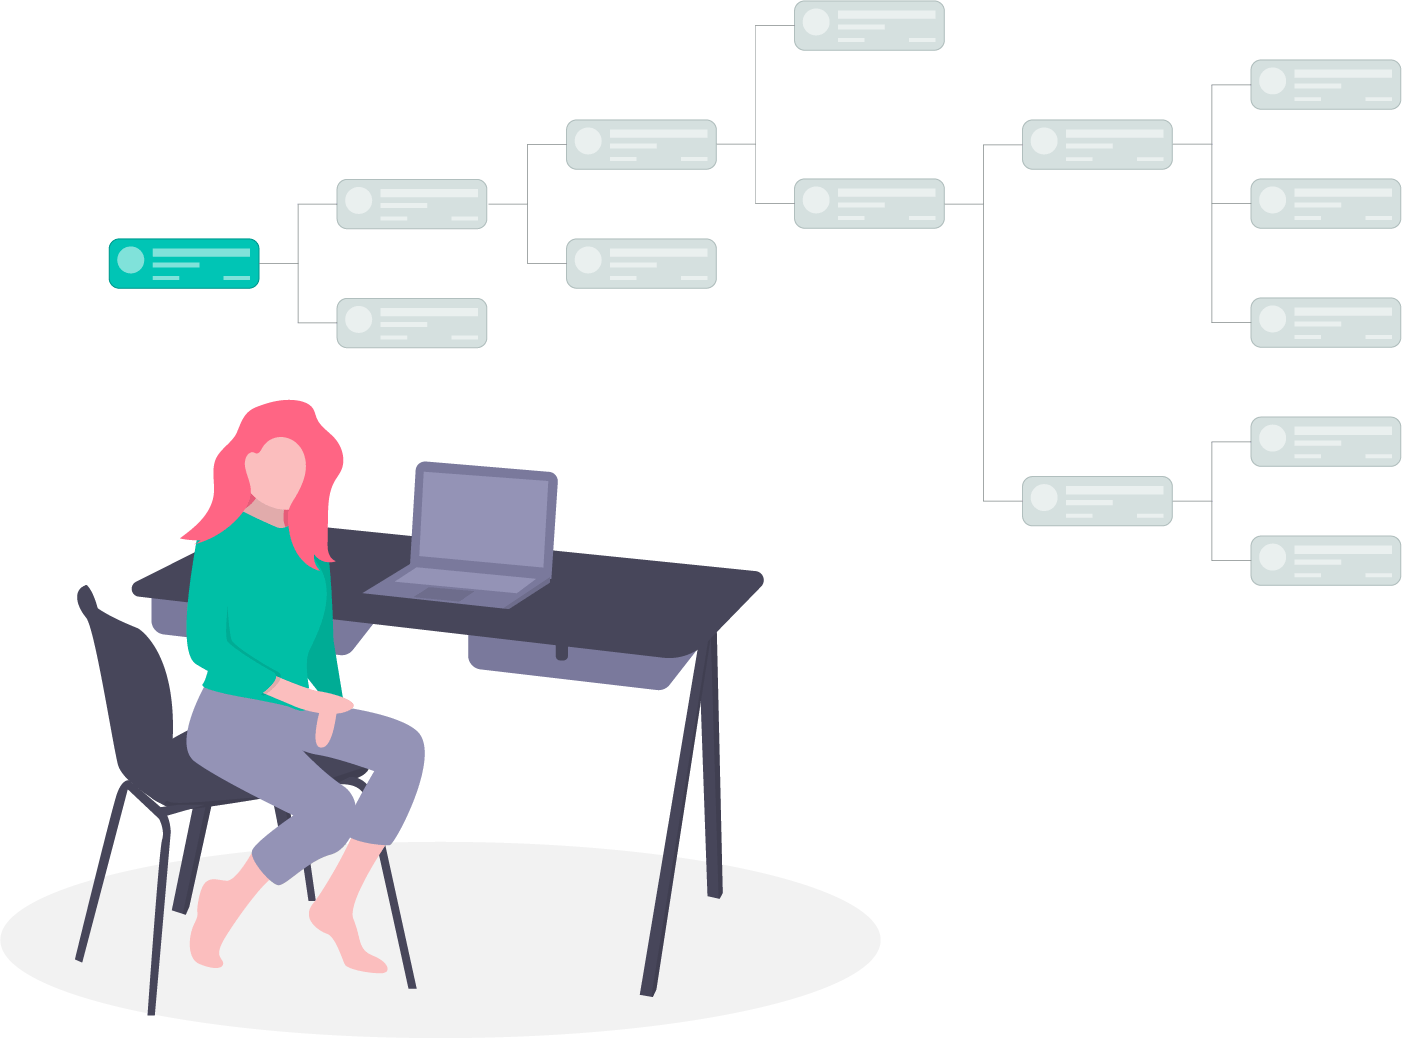 How are director connected?